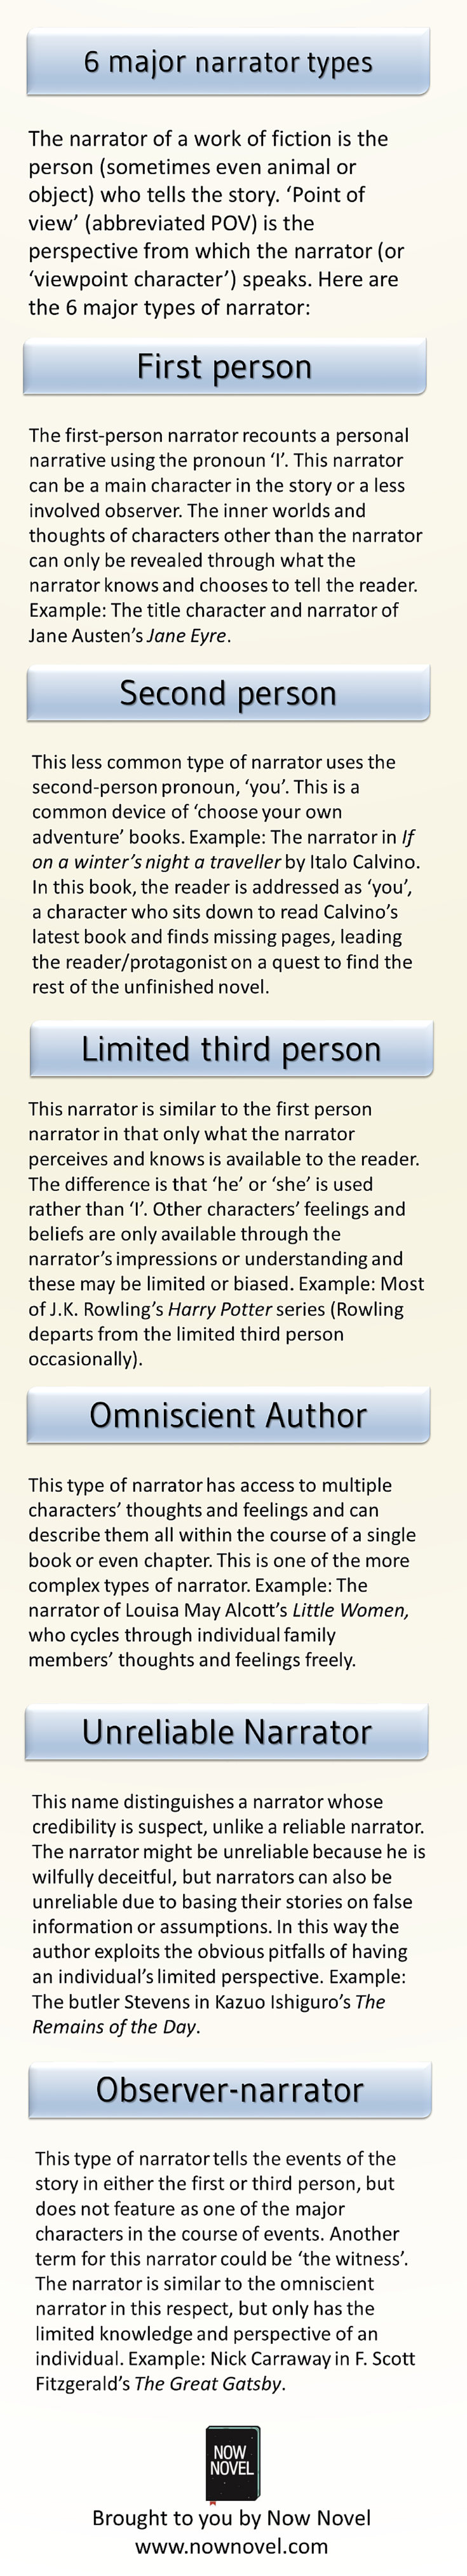 6 Types of Narration - Infographic | The Write Stuff